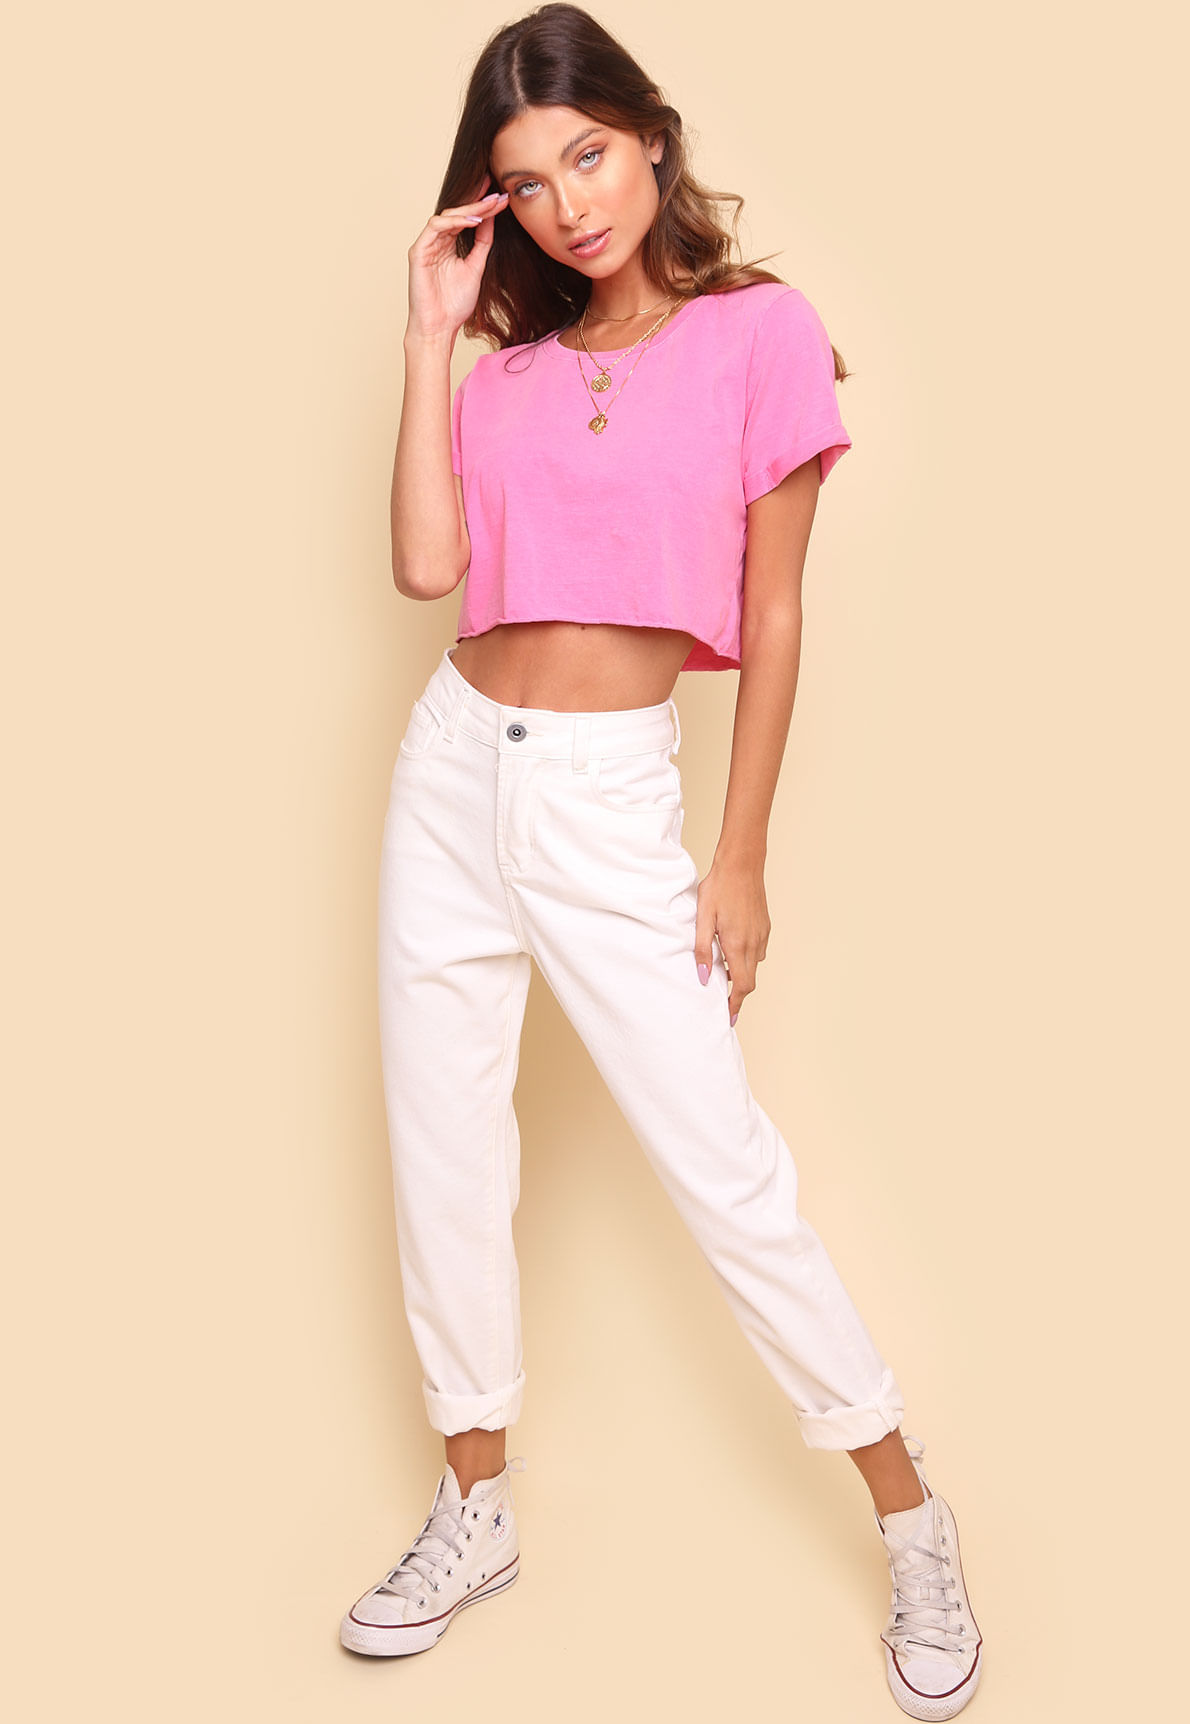 31676-cropped-rossy-rosa-05